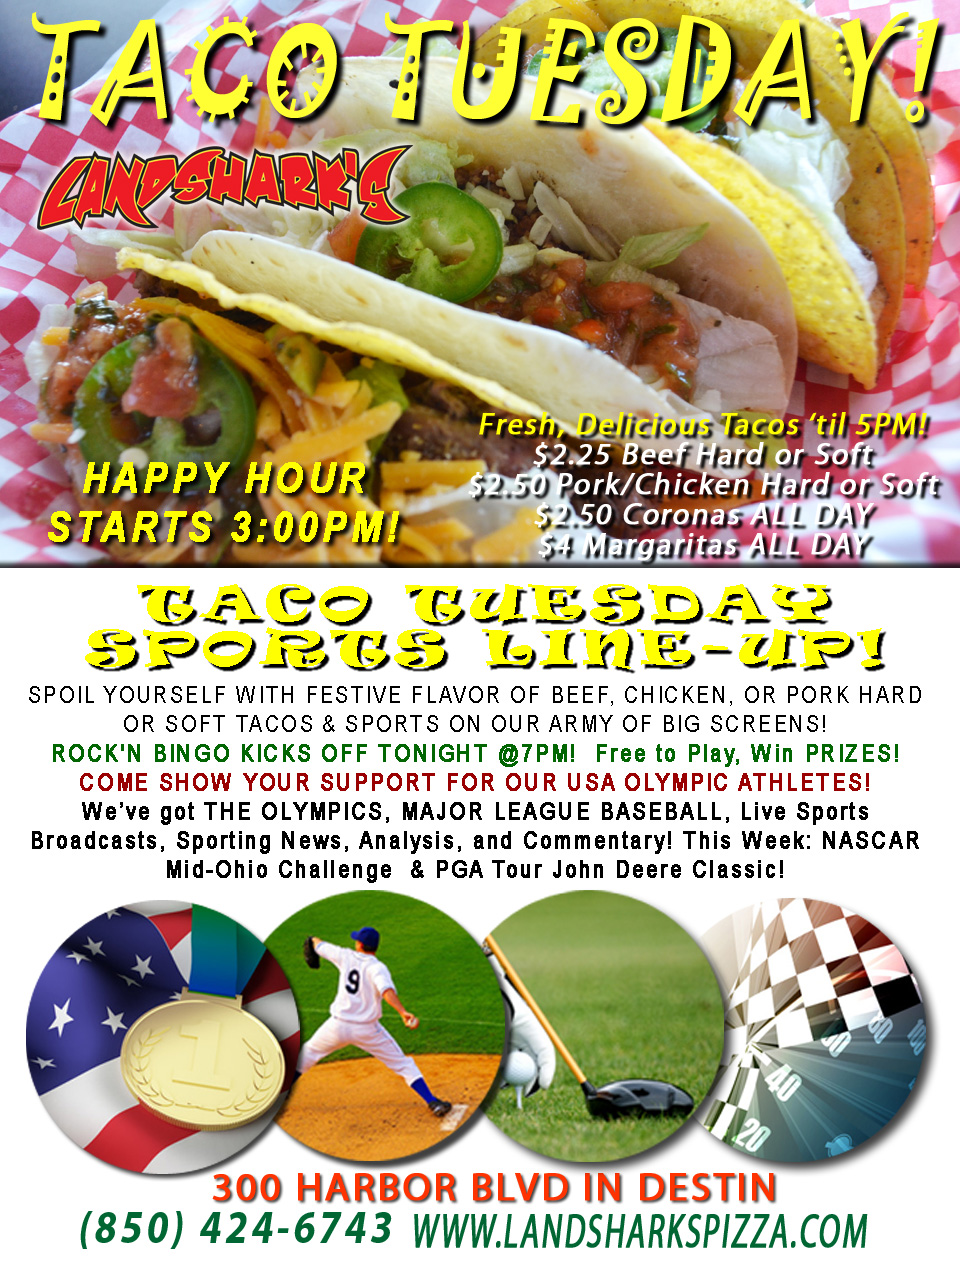 Destin FL Taco Tuesday at Landshark's Pizza